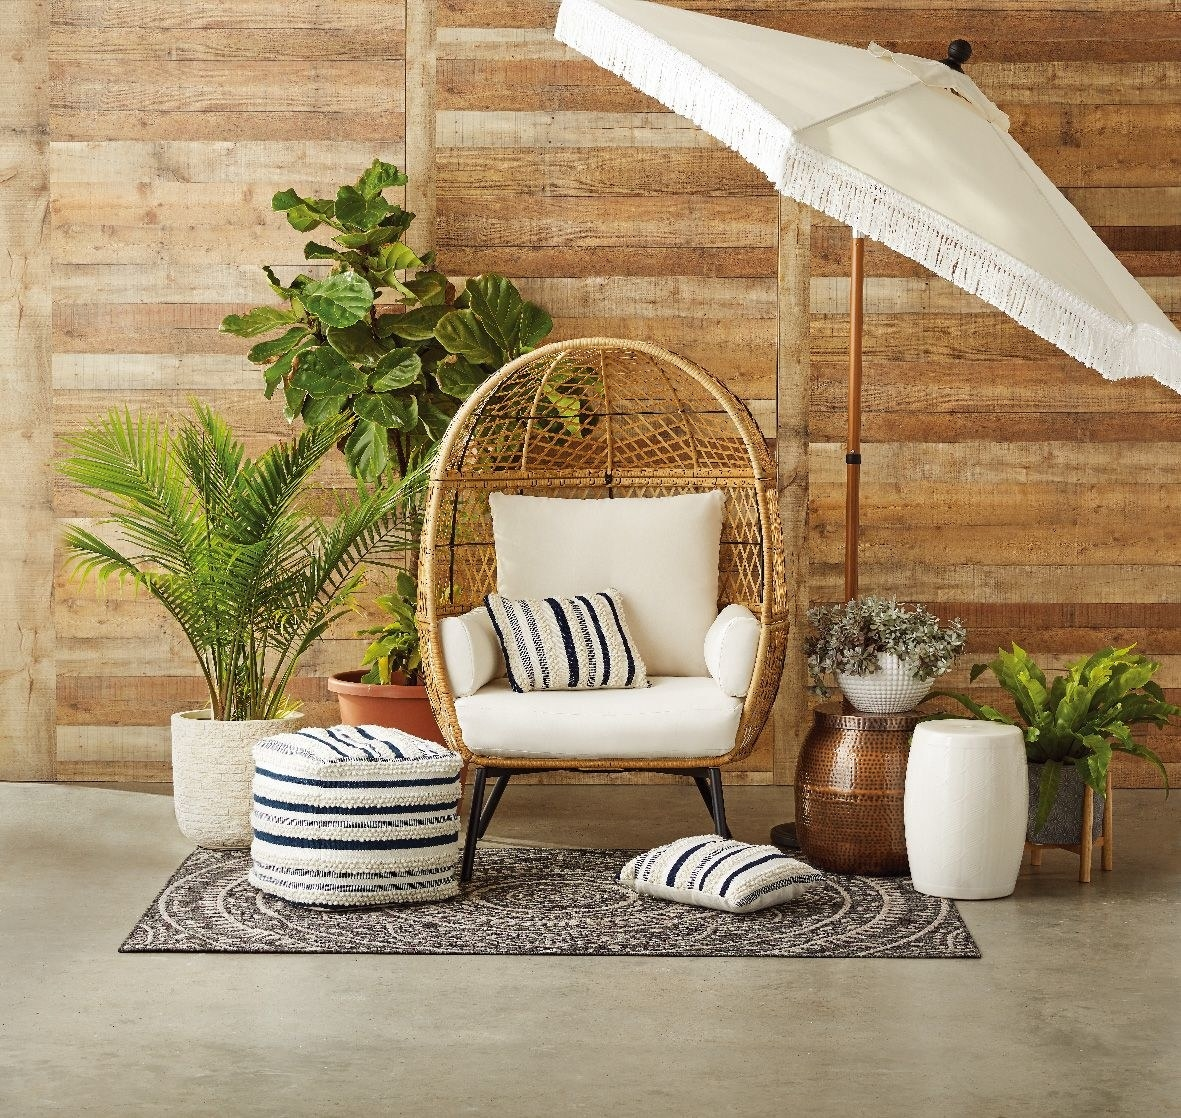 The rounded wicker chair